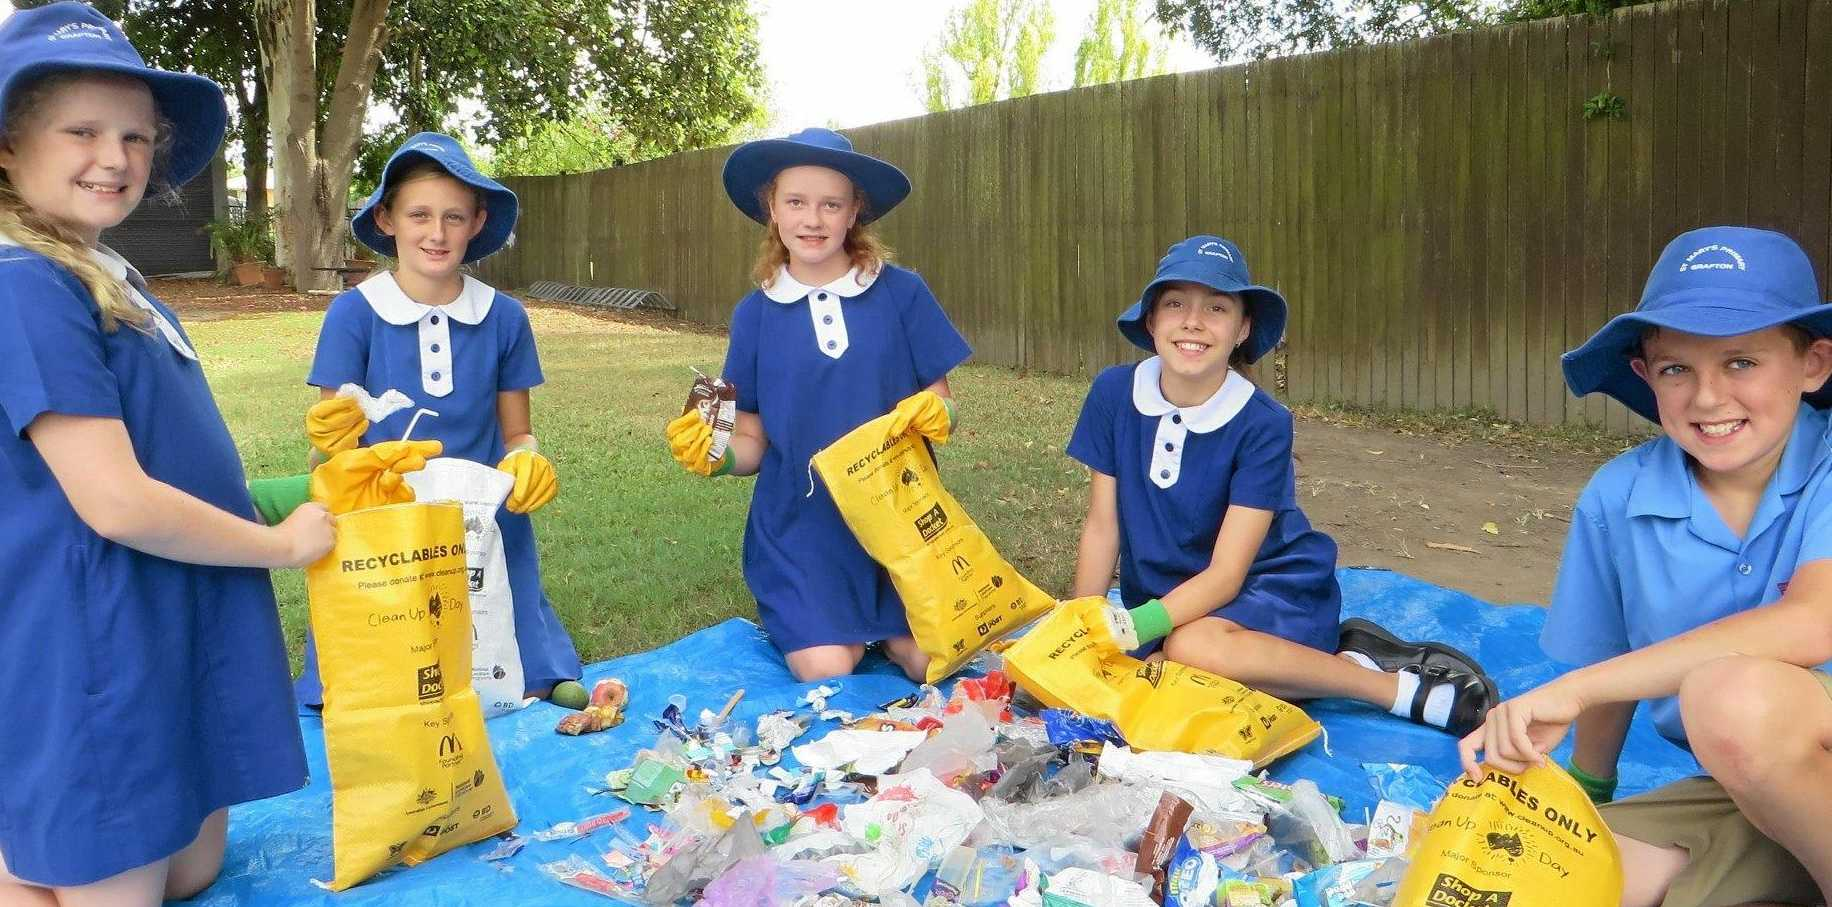 Charlotte, Abby, Ashleigh, Nadine and Dominic, Environmental Leaders at St Mary's Primary Grafton, sorted rubbish during Clean Up Australia Day activities.